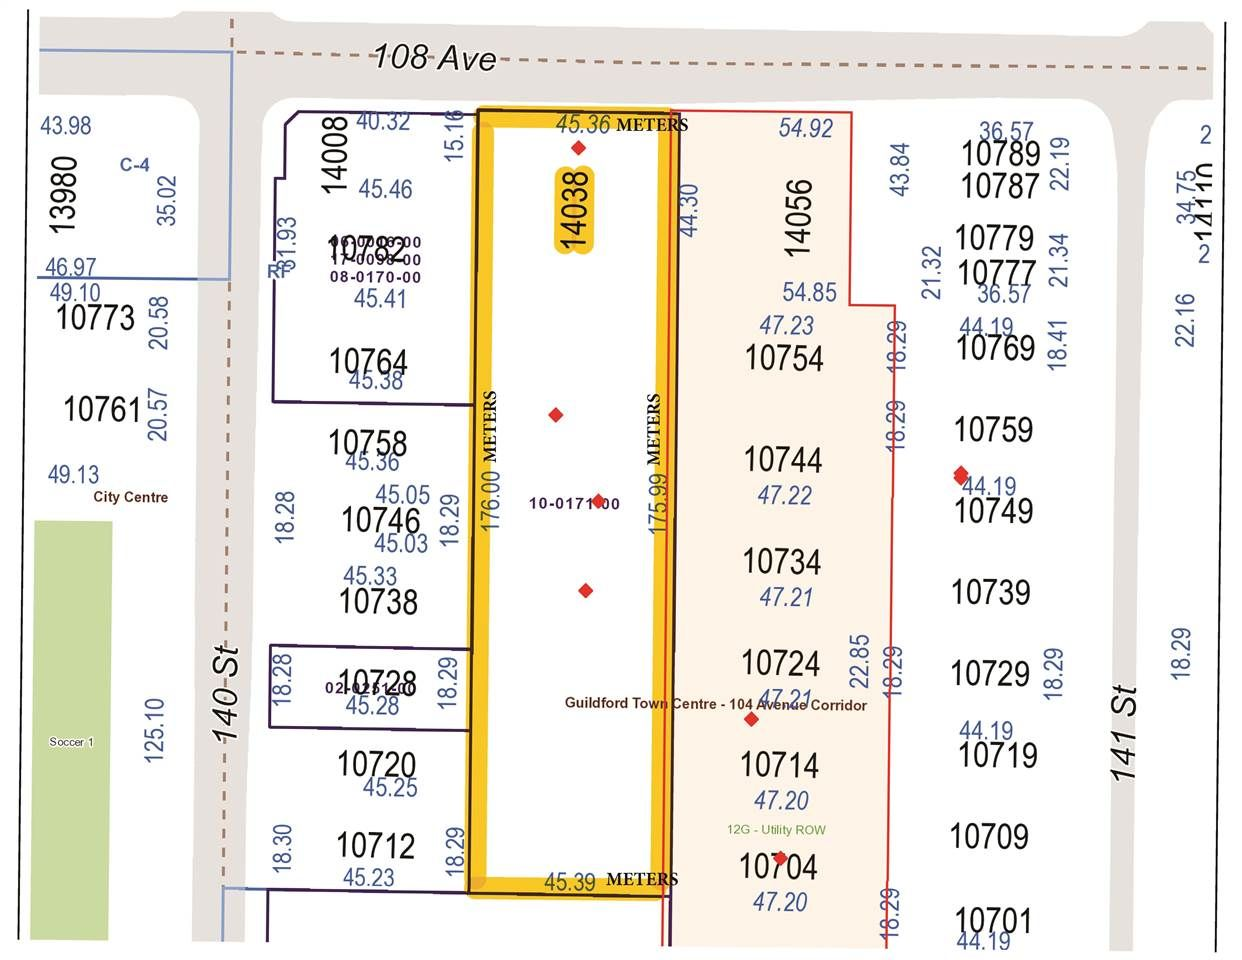 """Main Photo: 14038 108 Avenue in Surrey: Whalley Land for sale in """"WHALLEY"""" (North Surrey)  : MLS®# R2584457"""